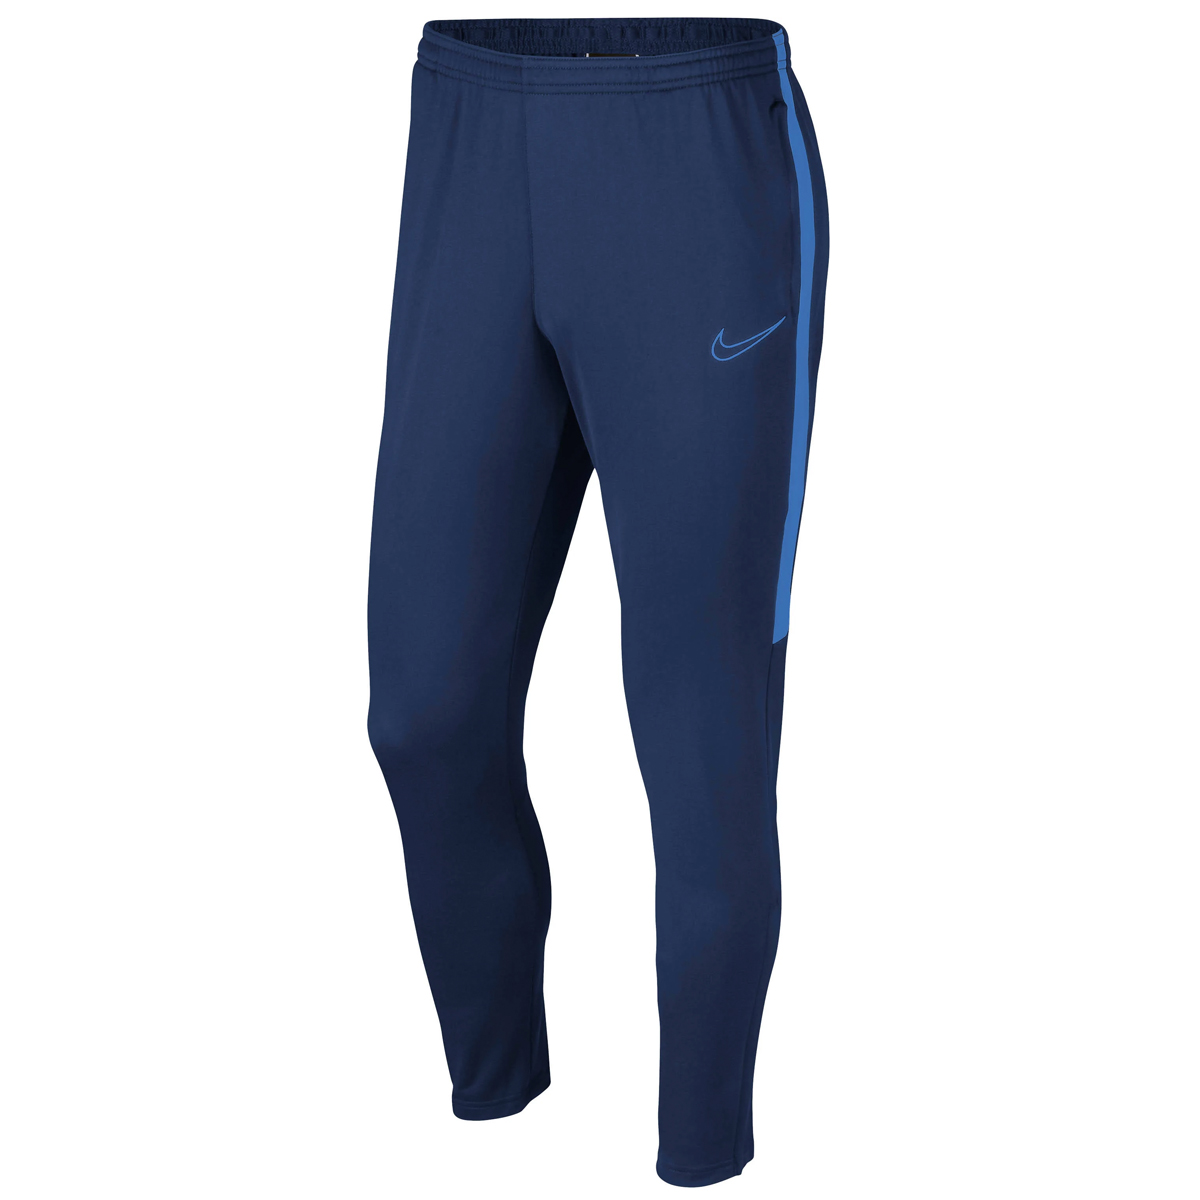 Blauwe trainingsbroek Nike Dri-fit - AO9729 407